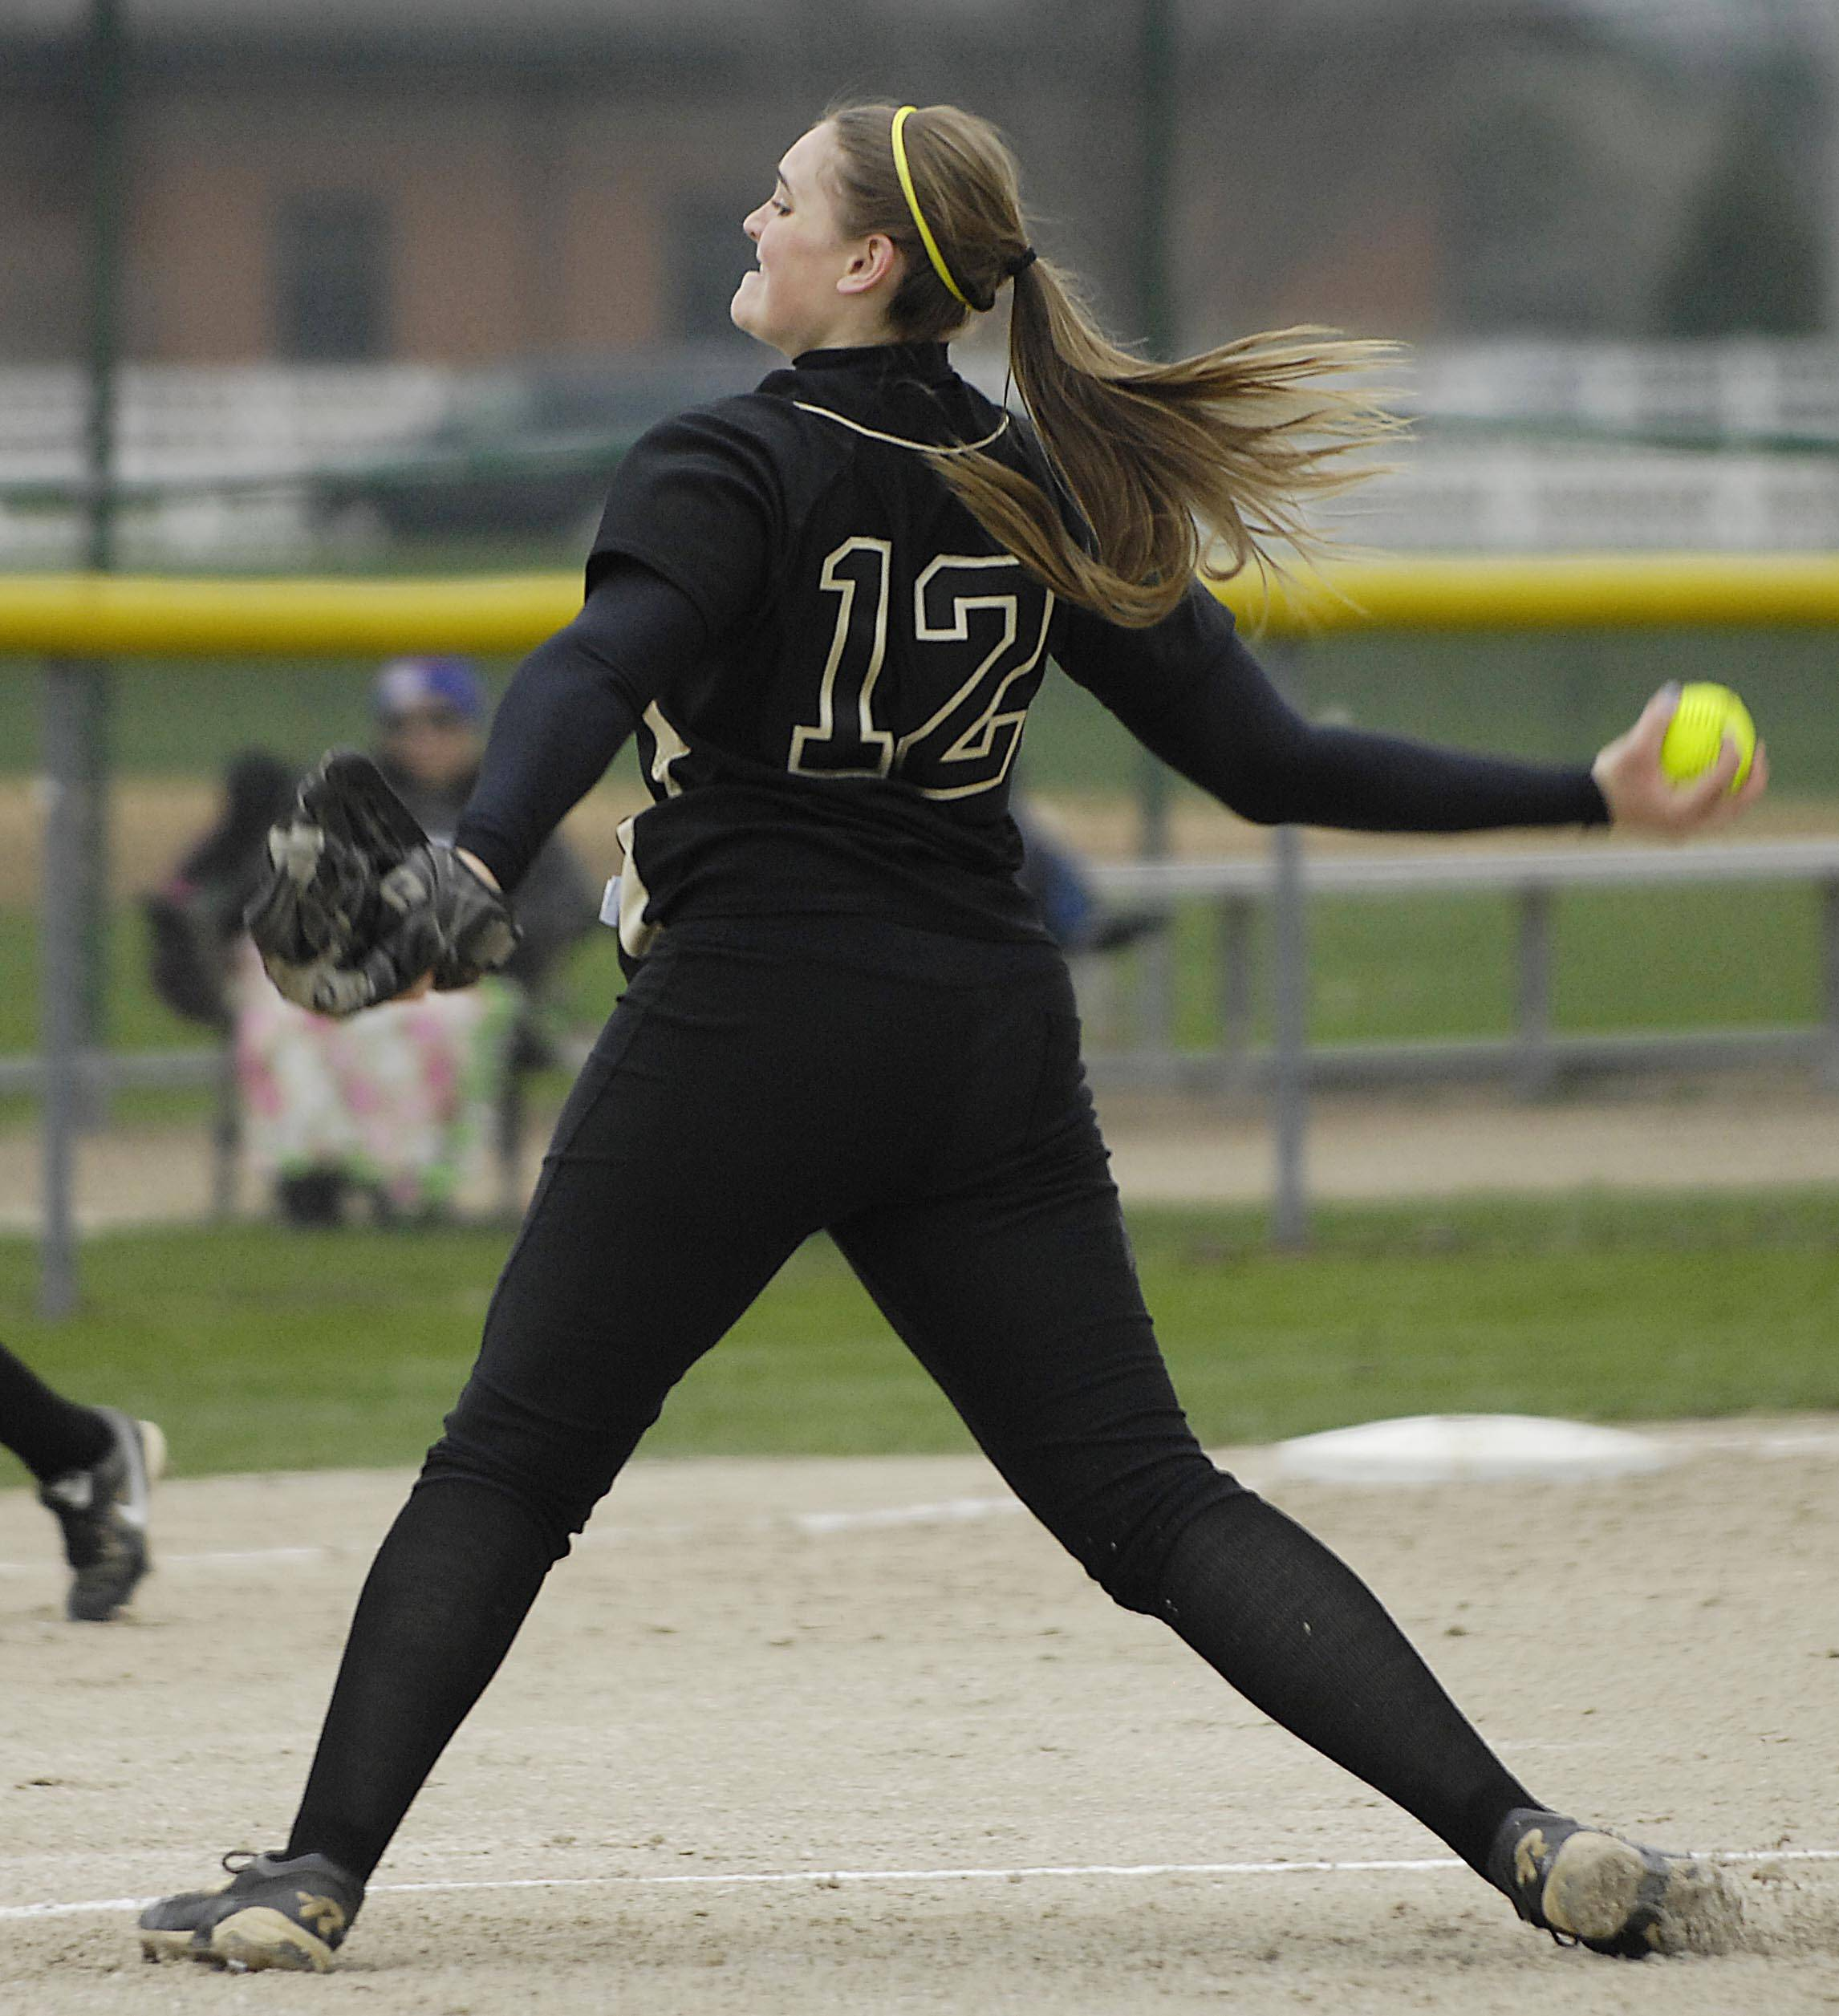 Streamwood pitcher Kaitlyn Hedger works against Batavia Monday in Batavia.